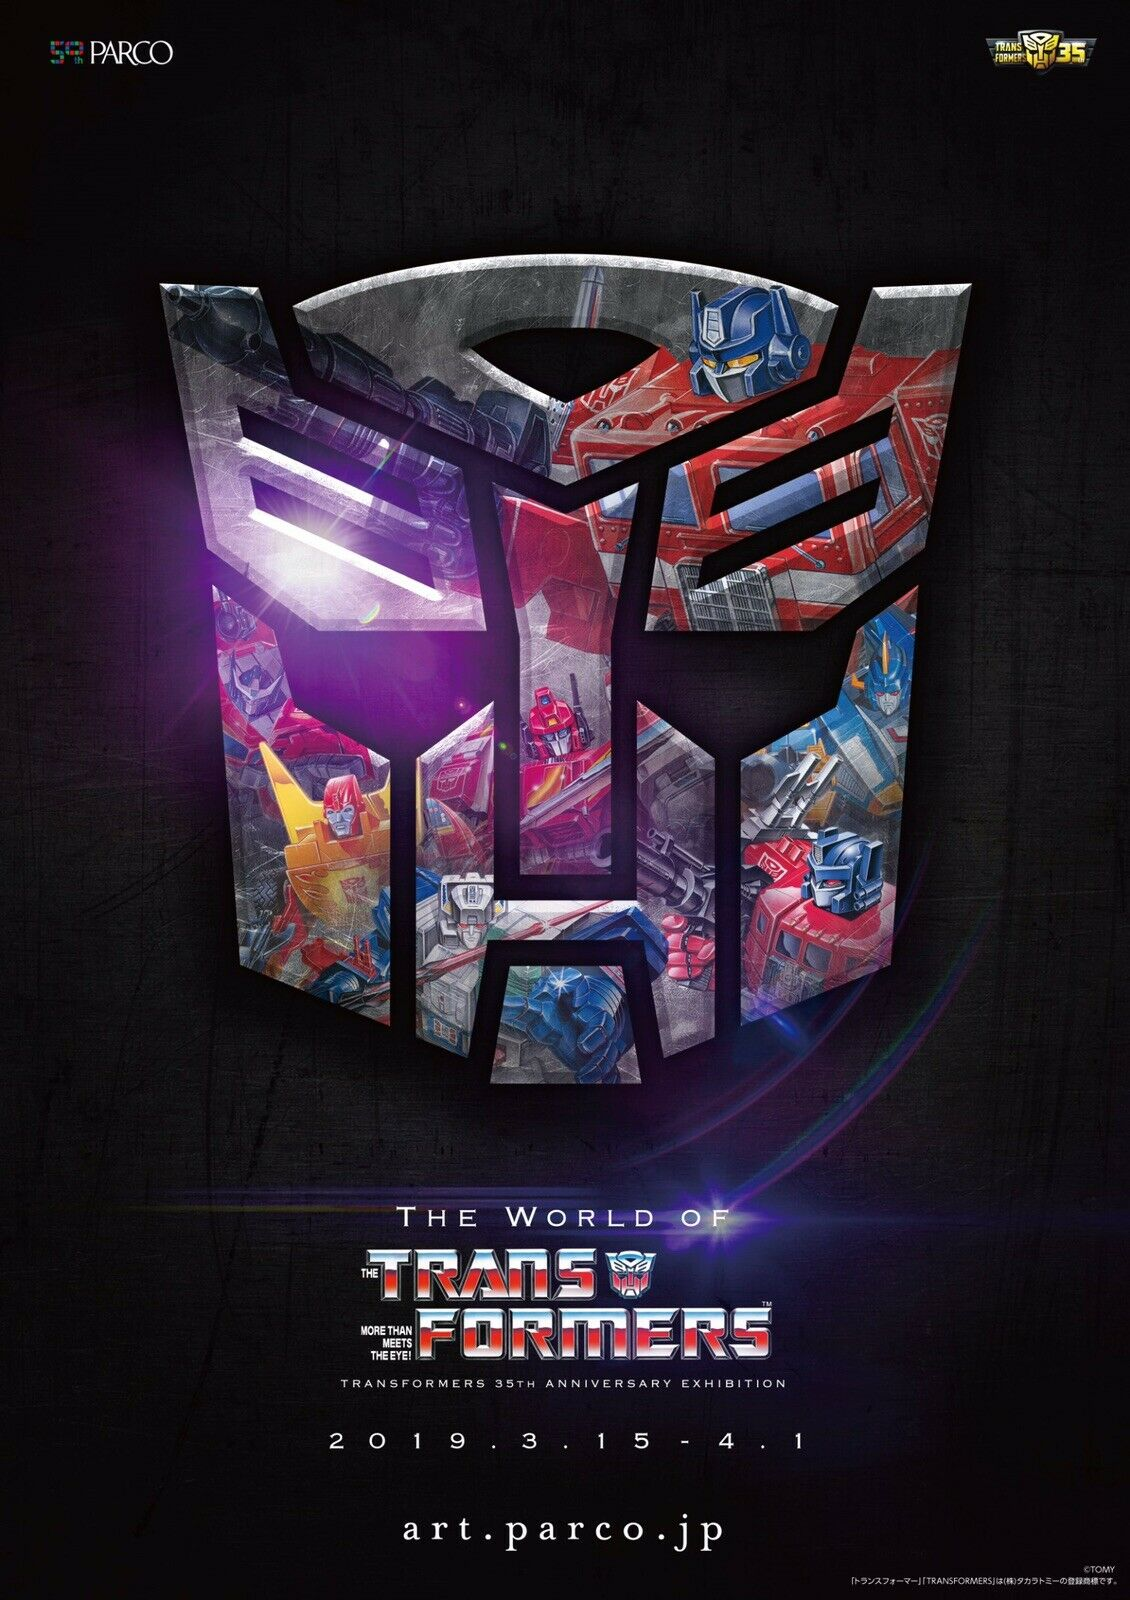 Japan 2019 PARCO TRANSFORMERS 35TH ANNIVERSARY EXHIBITION catalog book